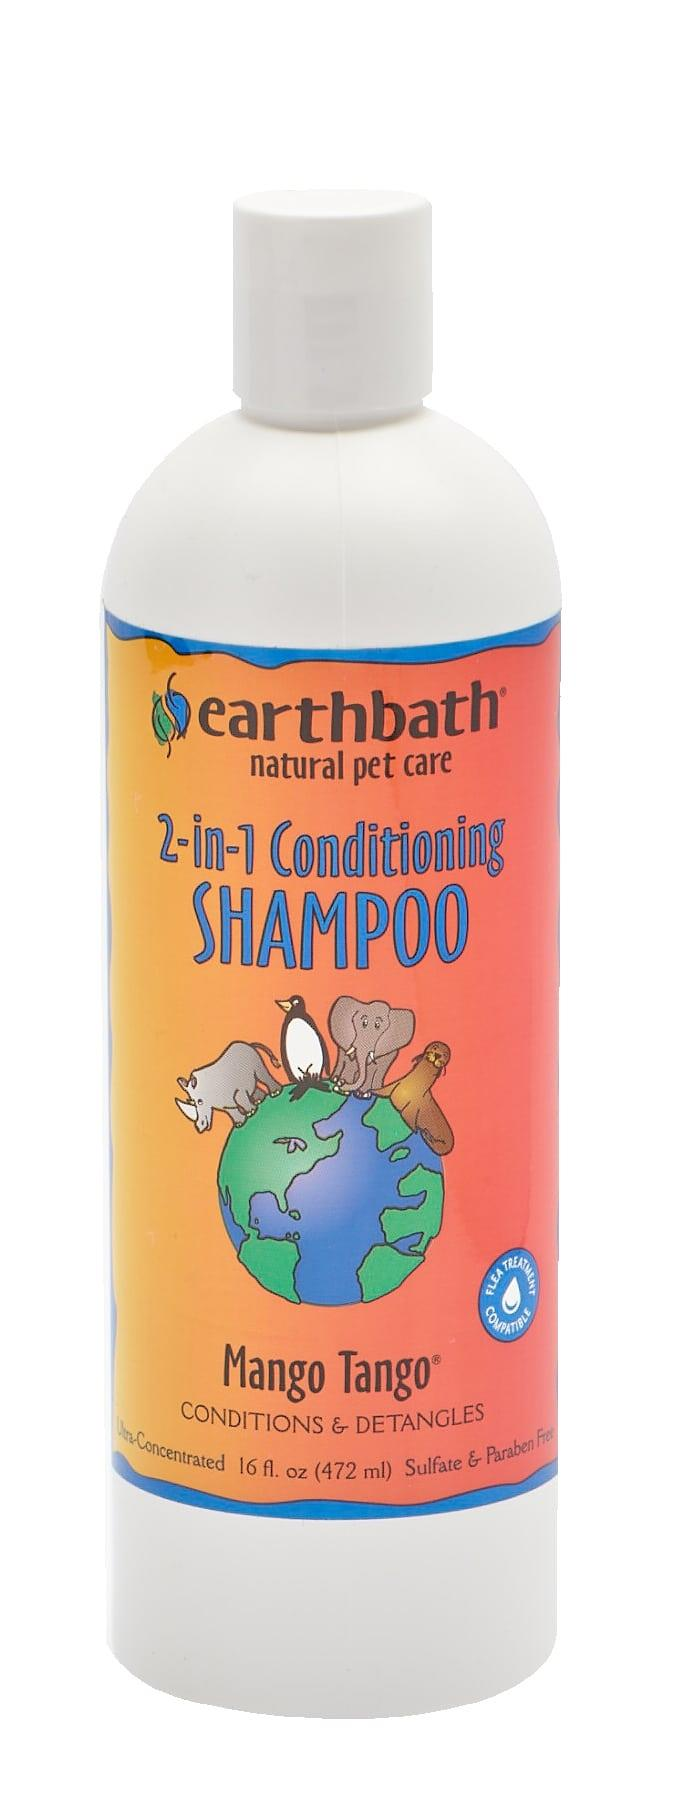 earthbath® Mango Tango® 2-in-1 Conditioning Shampoo